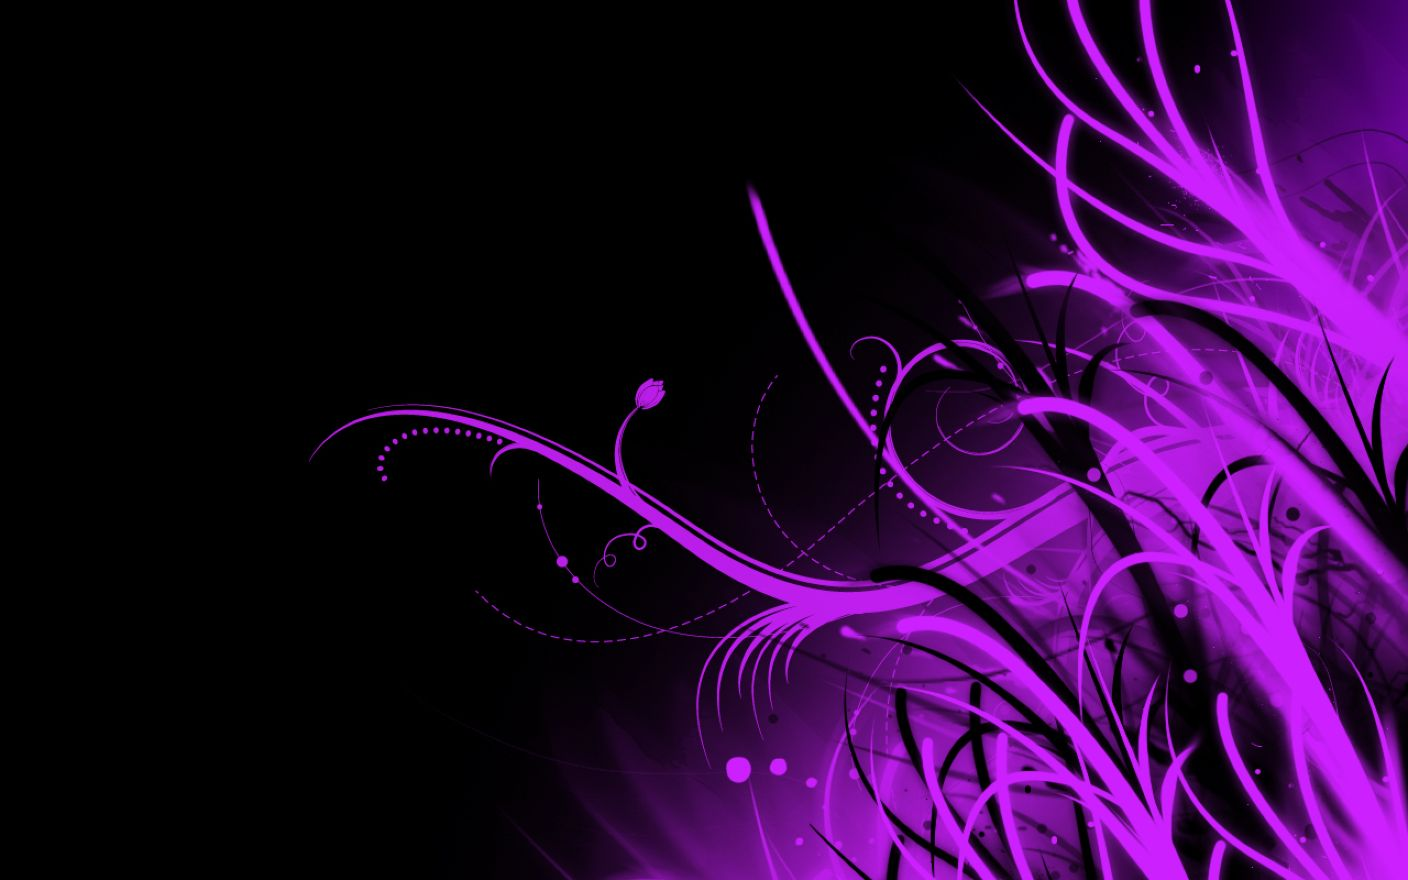 Abstract Purple 1280×800 Wallpaper